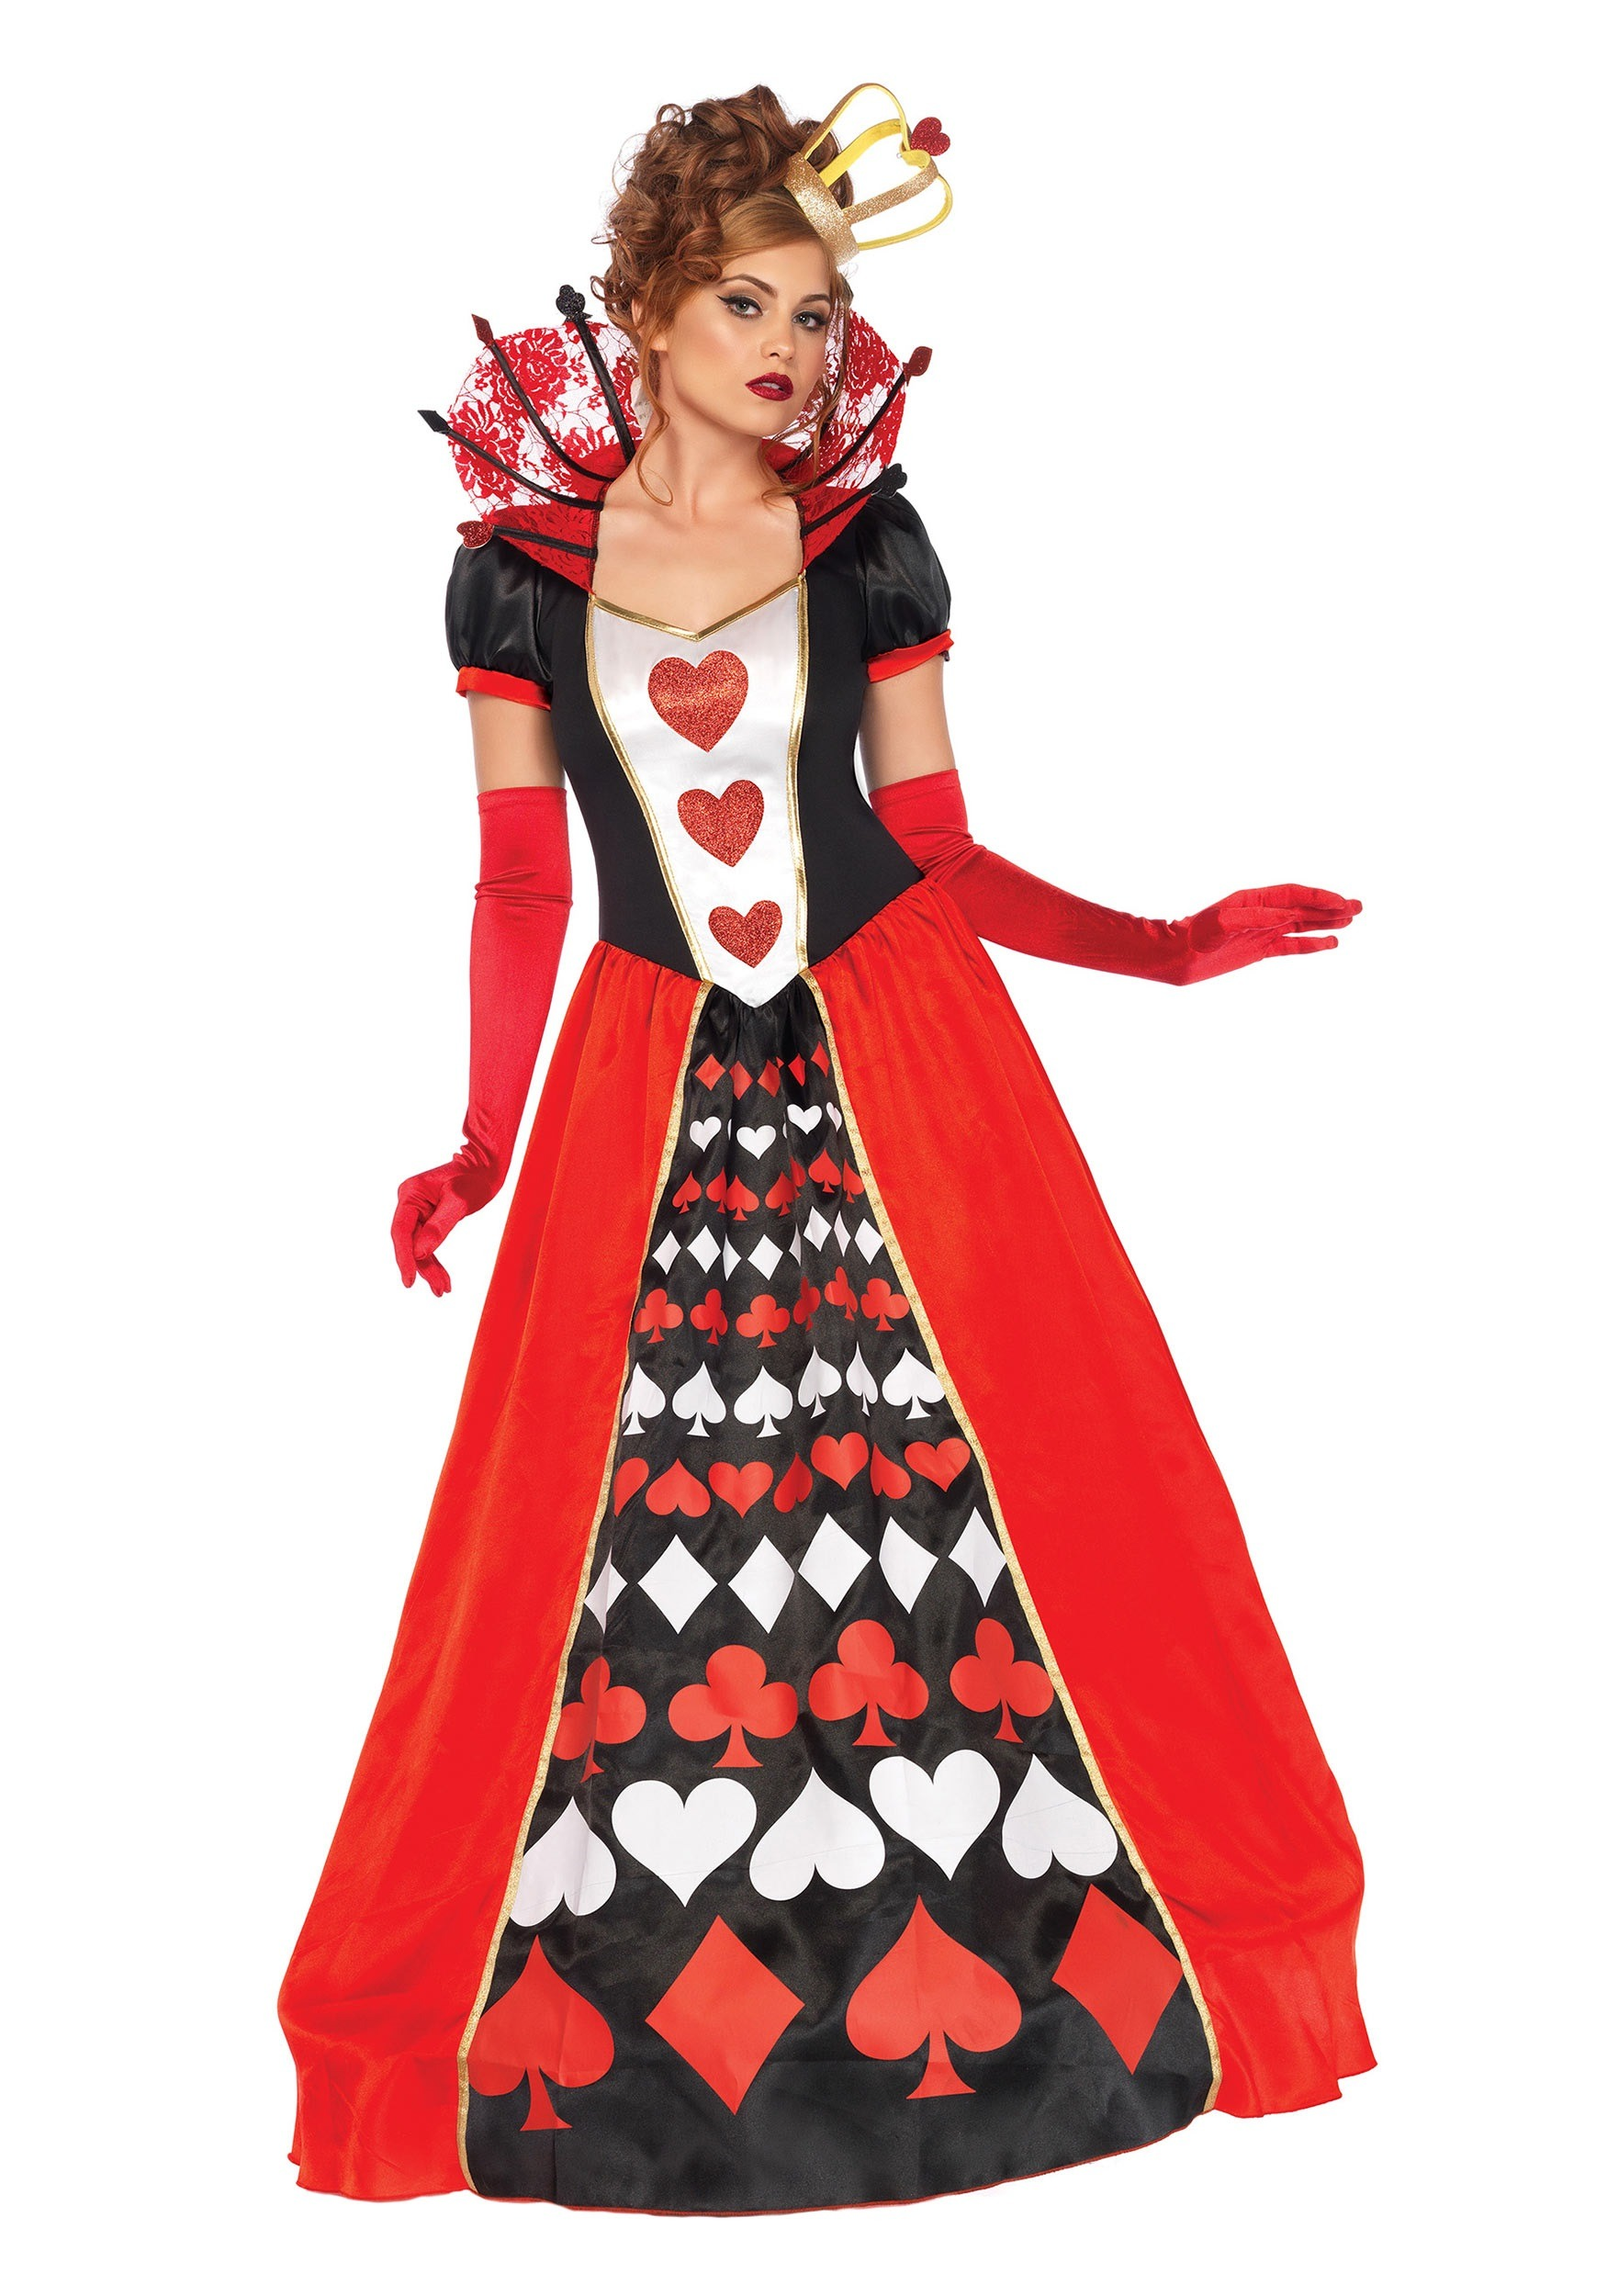 women 39 s deluxe queen of hearts costume. Black Bedroom Furniture Sets. Home Design Ideas